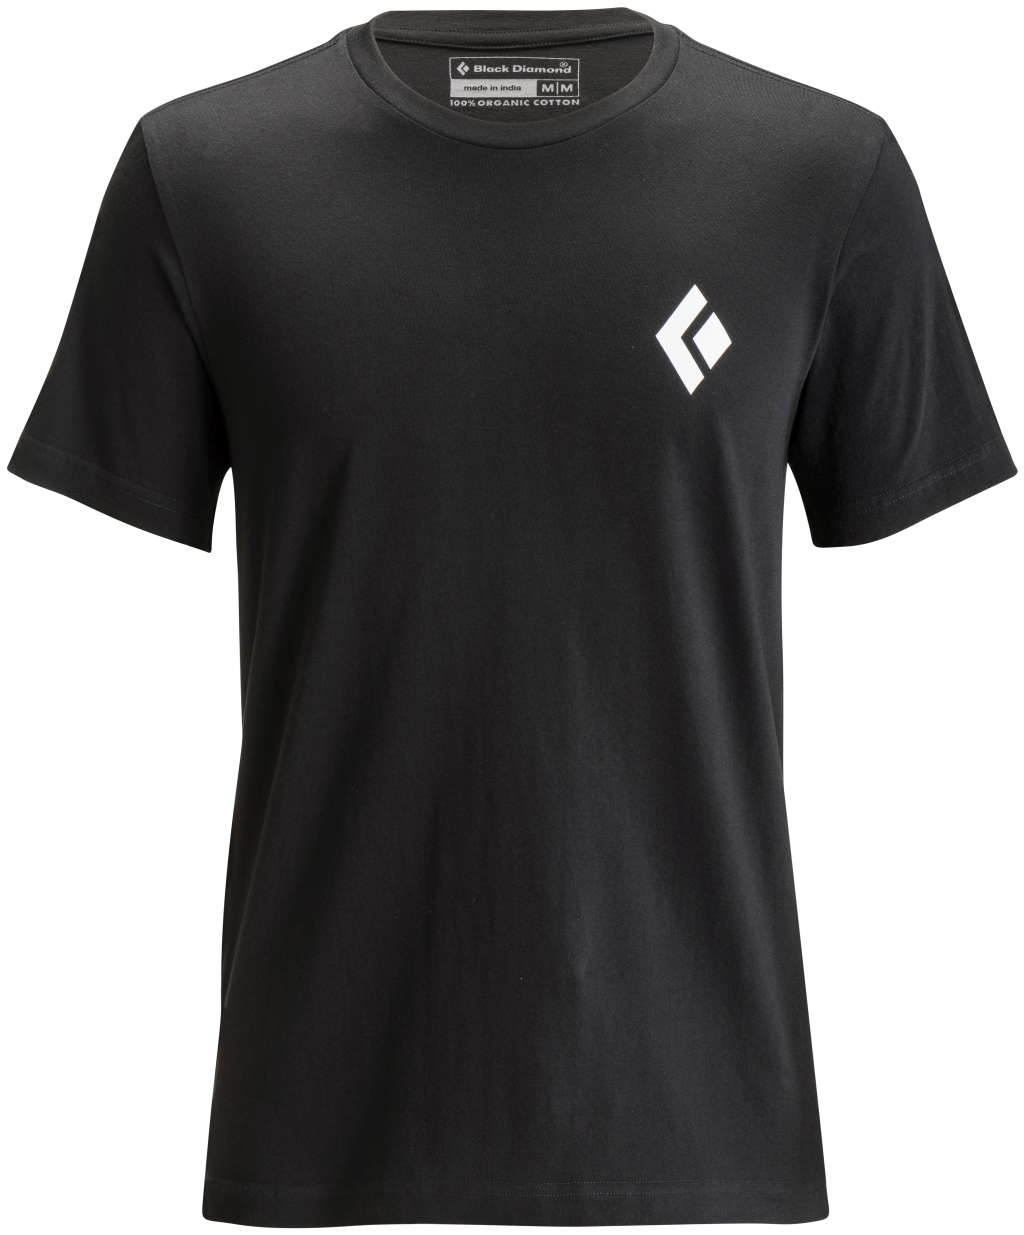 Black Diamond Equipment For Alpinists Tee Black-30